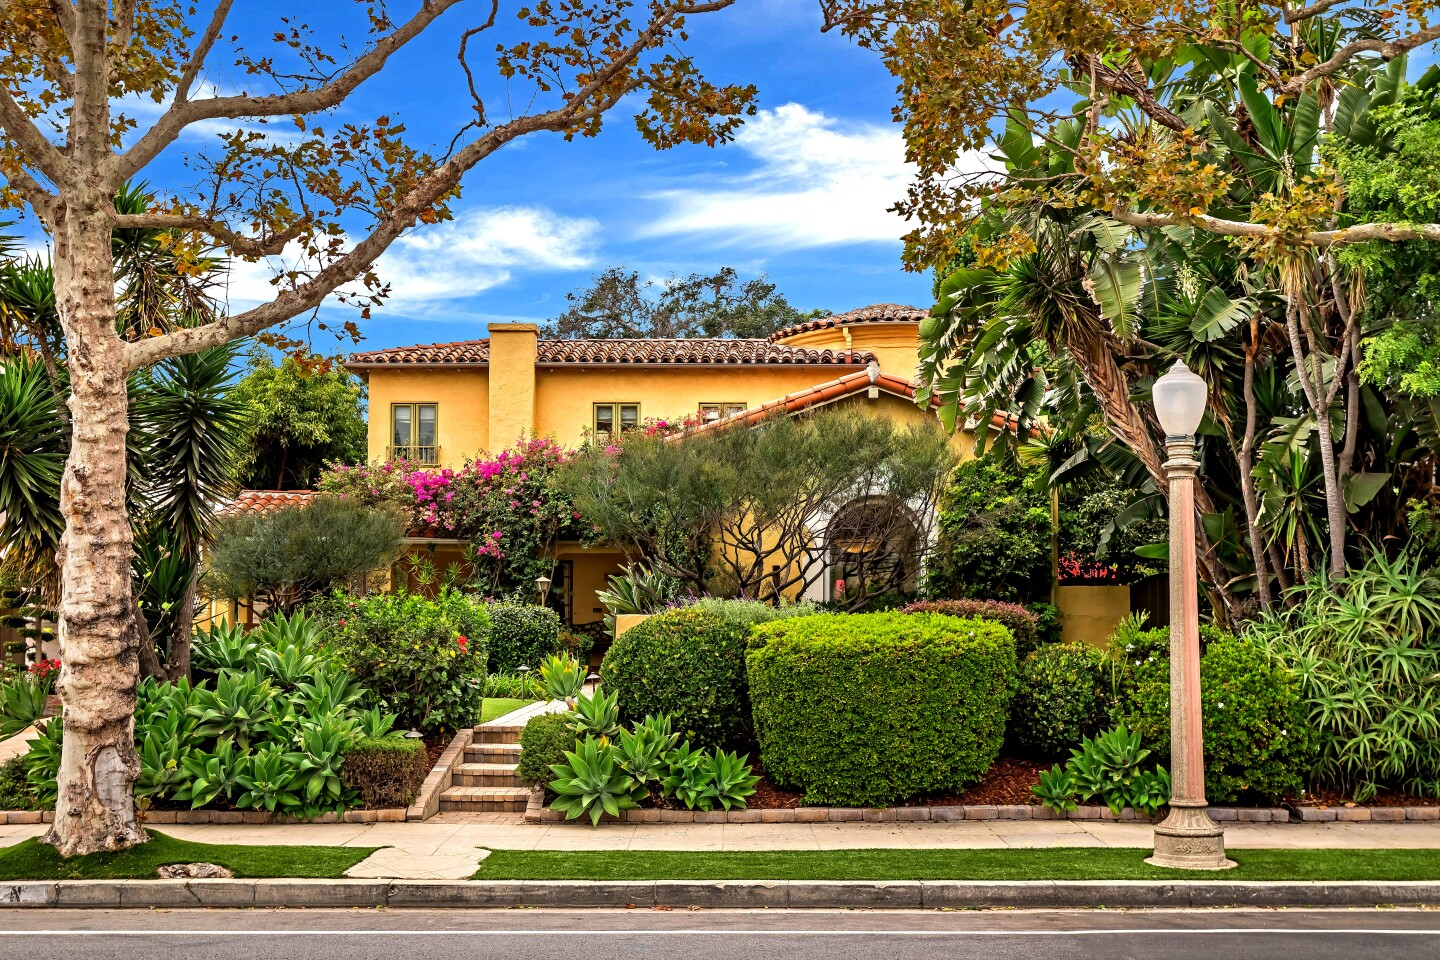 Built in 1929, the charming Spanish Revival-style home was once owned by a pair of Getty Center architectural historians. Living spaces filled with period charm open to a landscaped backyard with fountains and a spa.